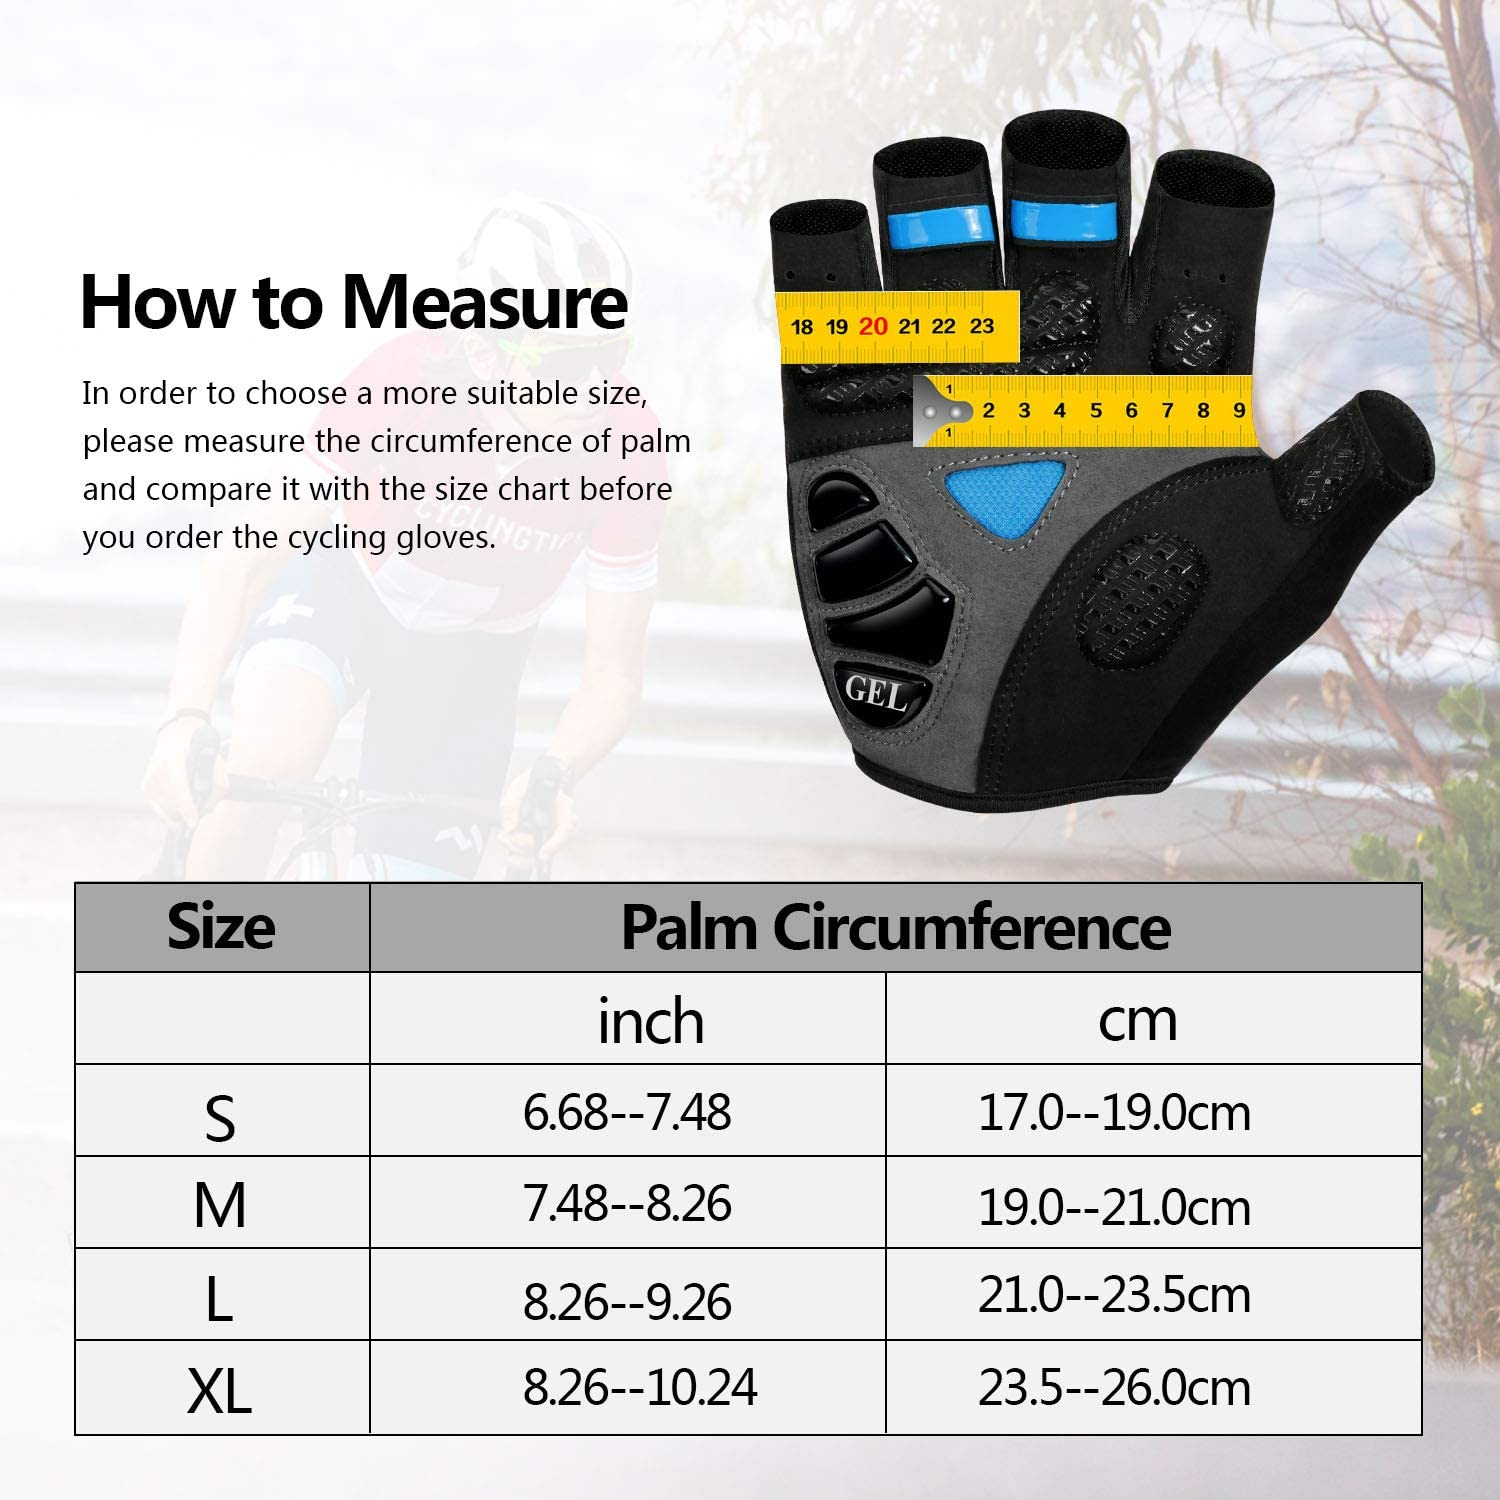 MTB Glove with Shock-Absorbing Pad NICEWIN 6mm SBR Padded Motorcycle Mountain Biking Gloves for Men Women Youth Breathable Mesh for Outdoor Sports Road Cycling